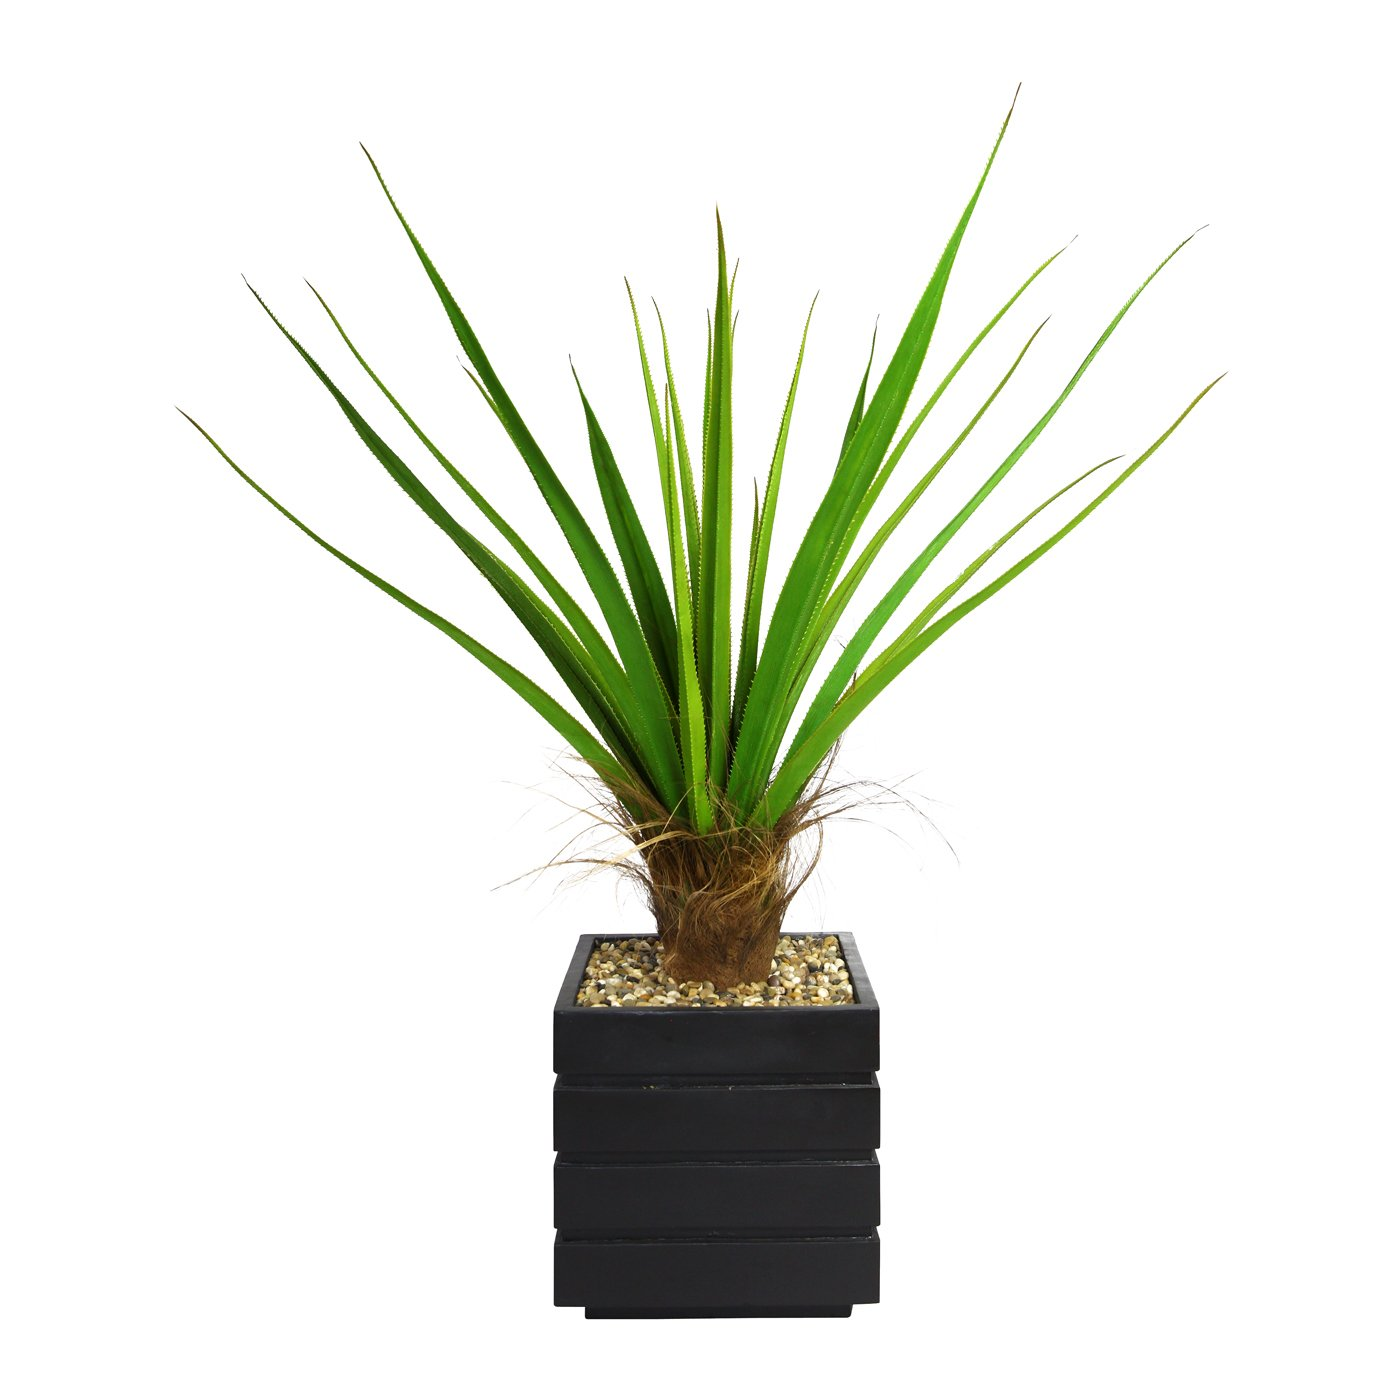 50-in Tall Agave Plant with Cocoa Skin in 14-in Fiberstone Planter